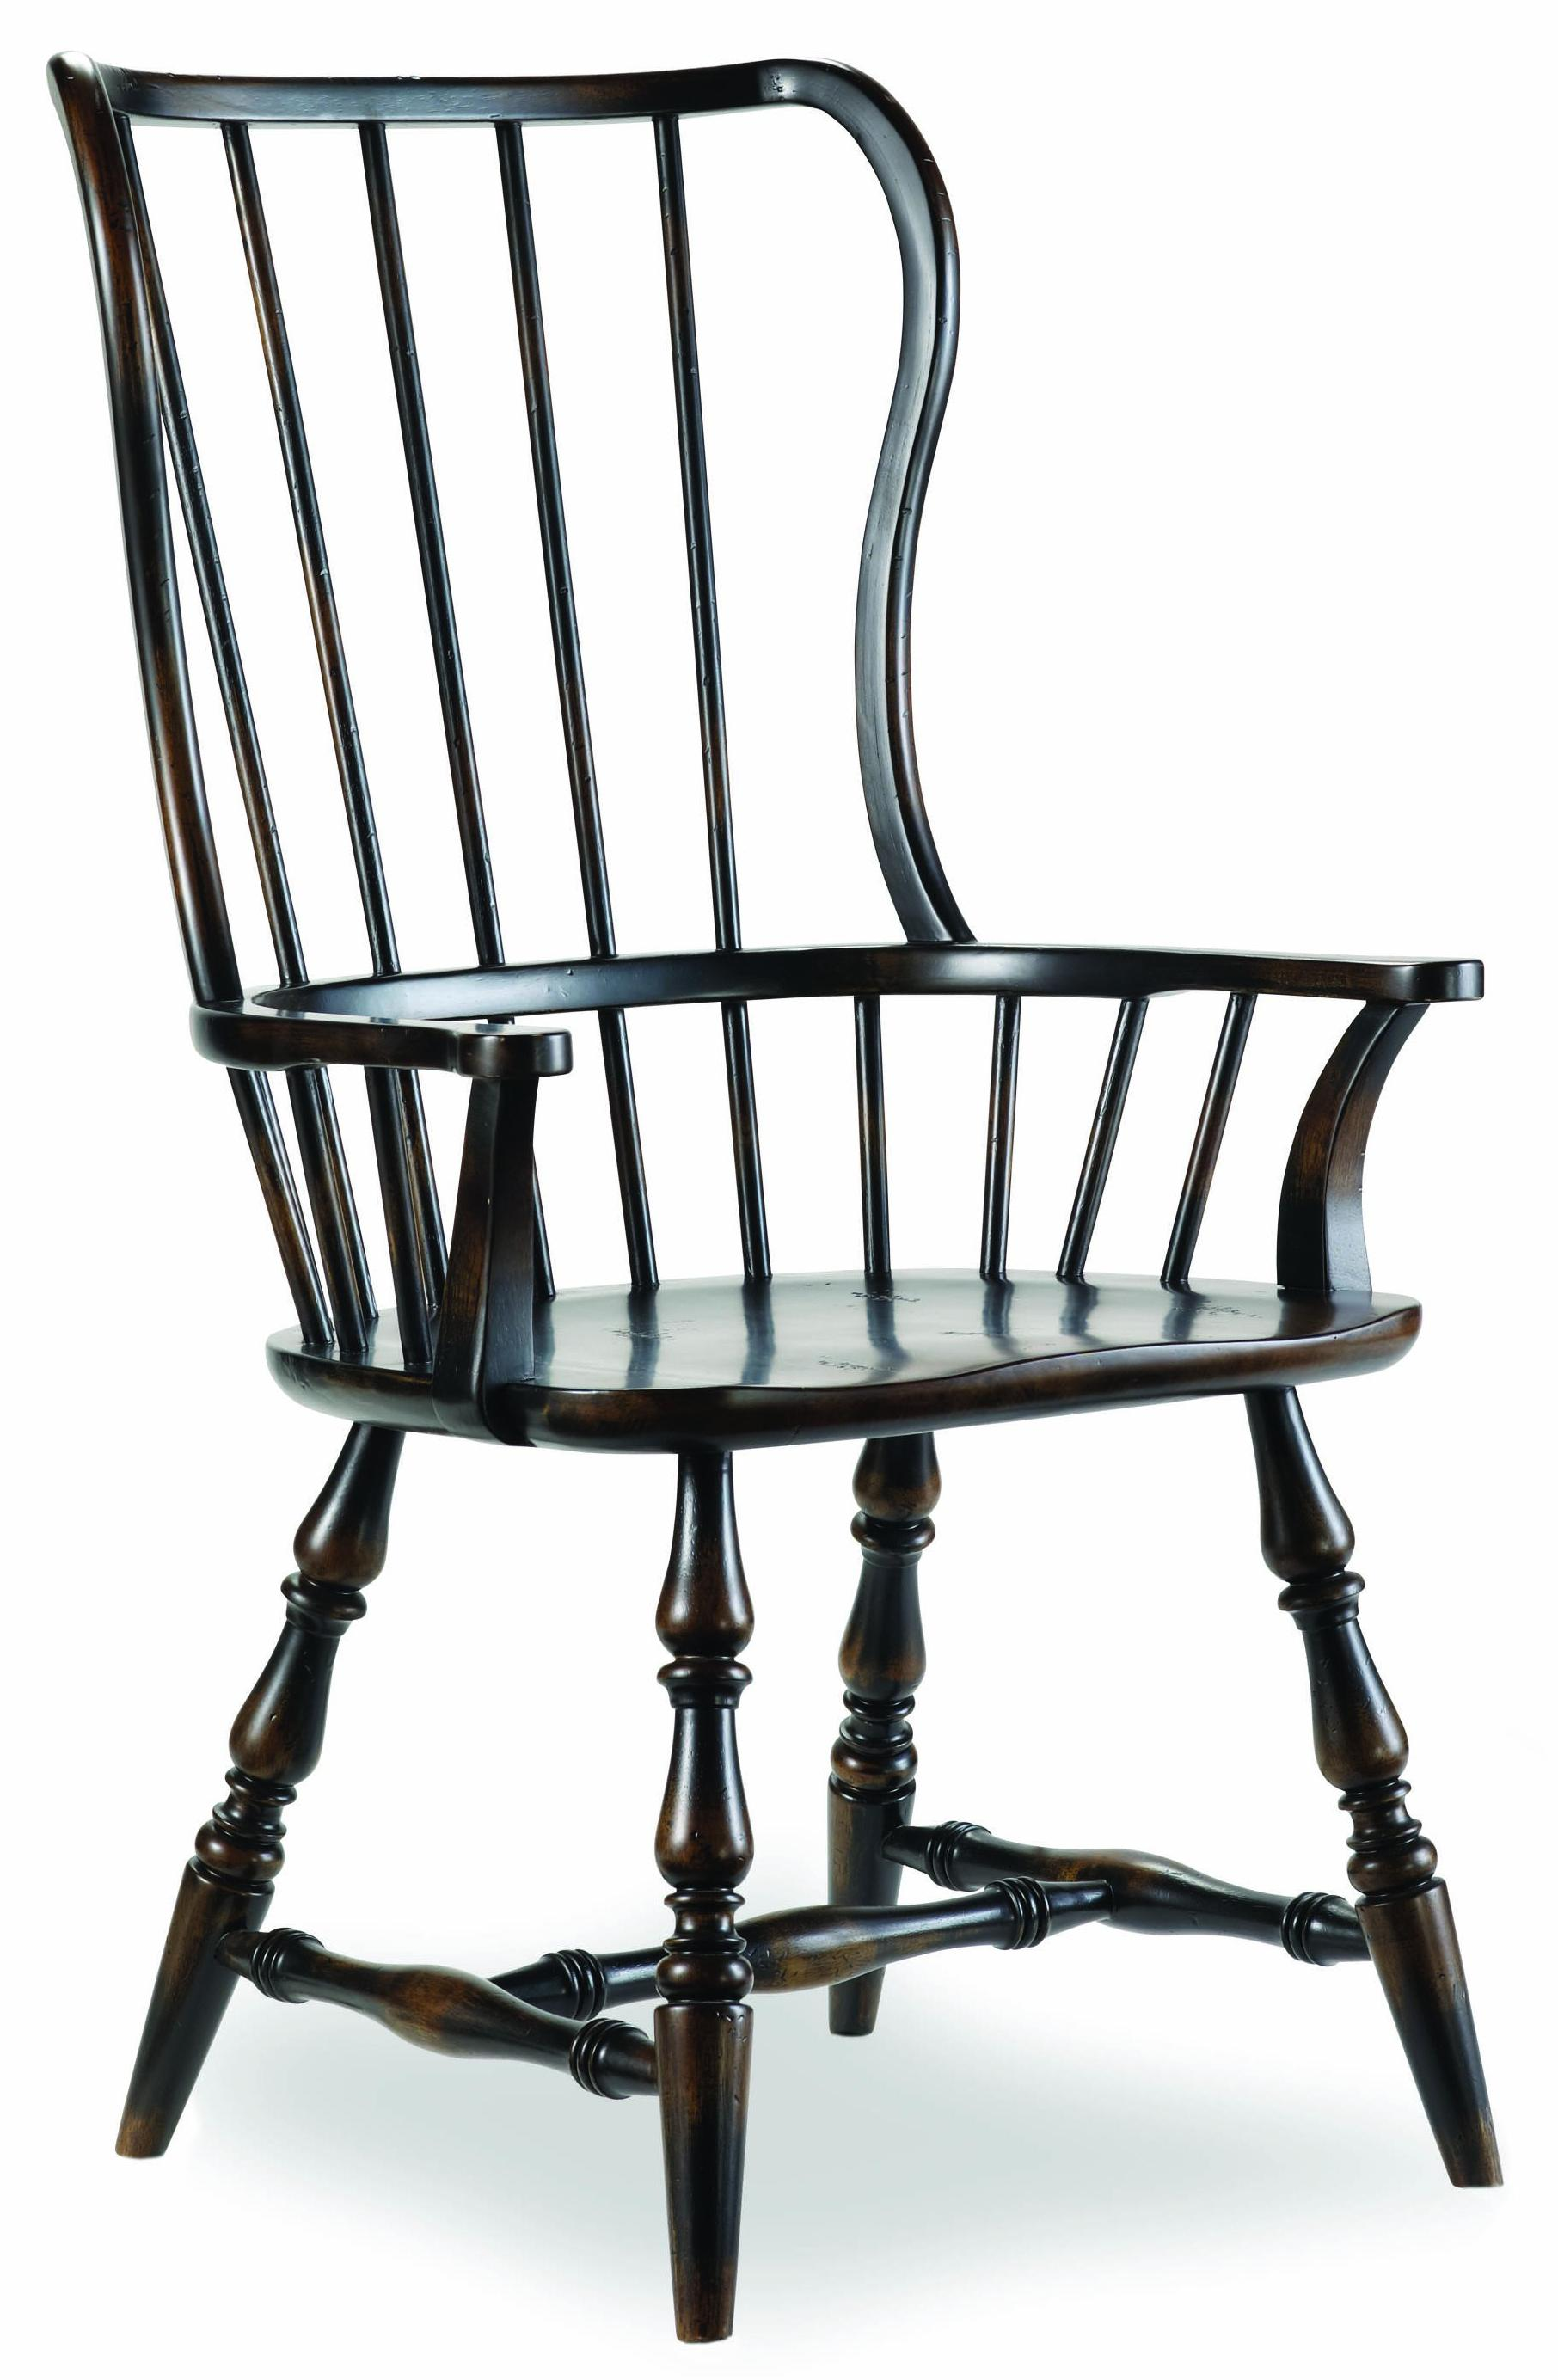 Hooker Furniture Sanctuary Spindle Back Arm Chair - Item Number: 3005-75300